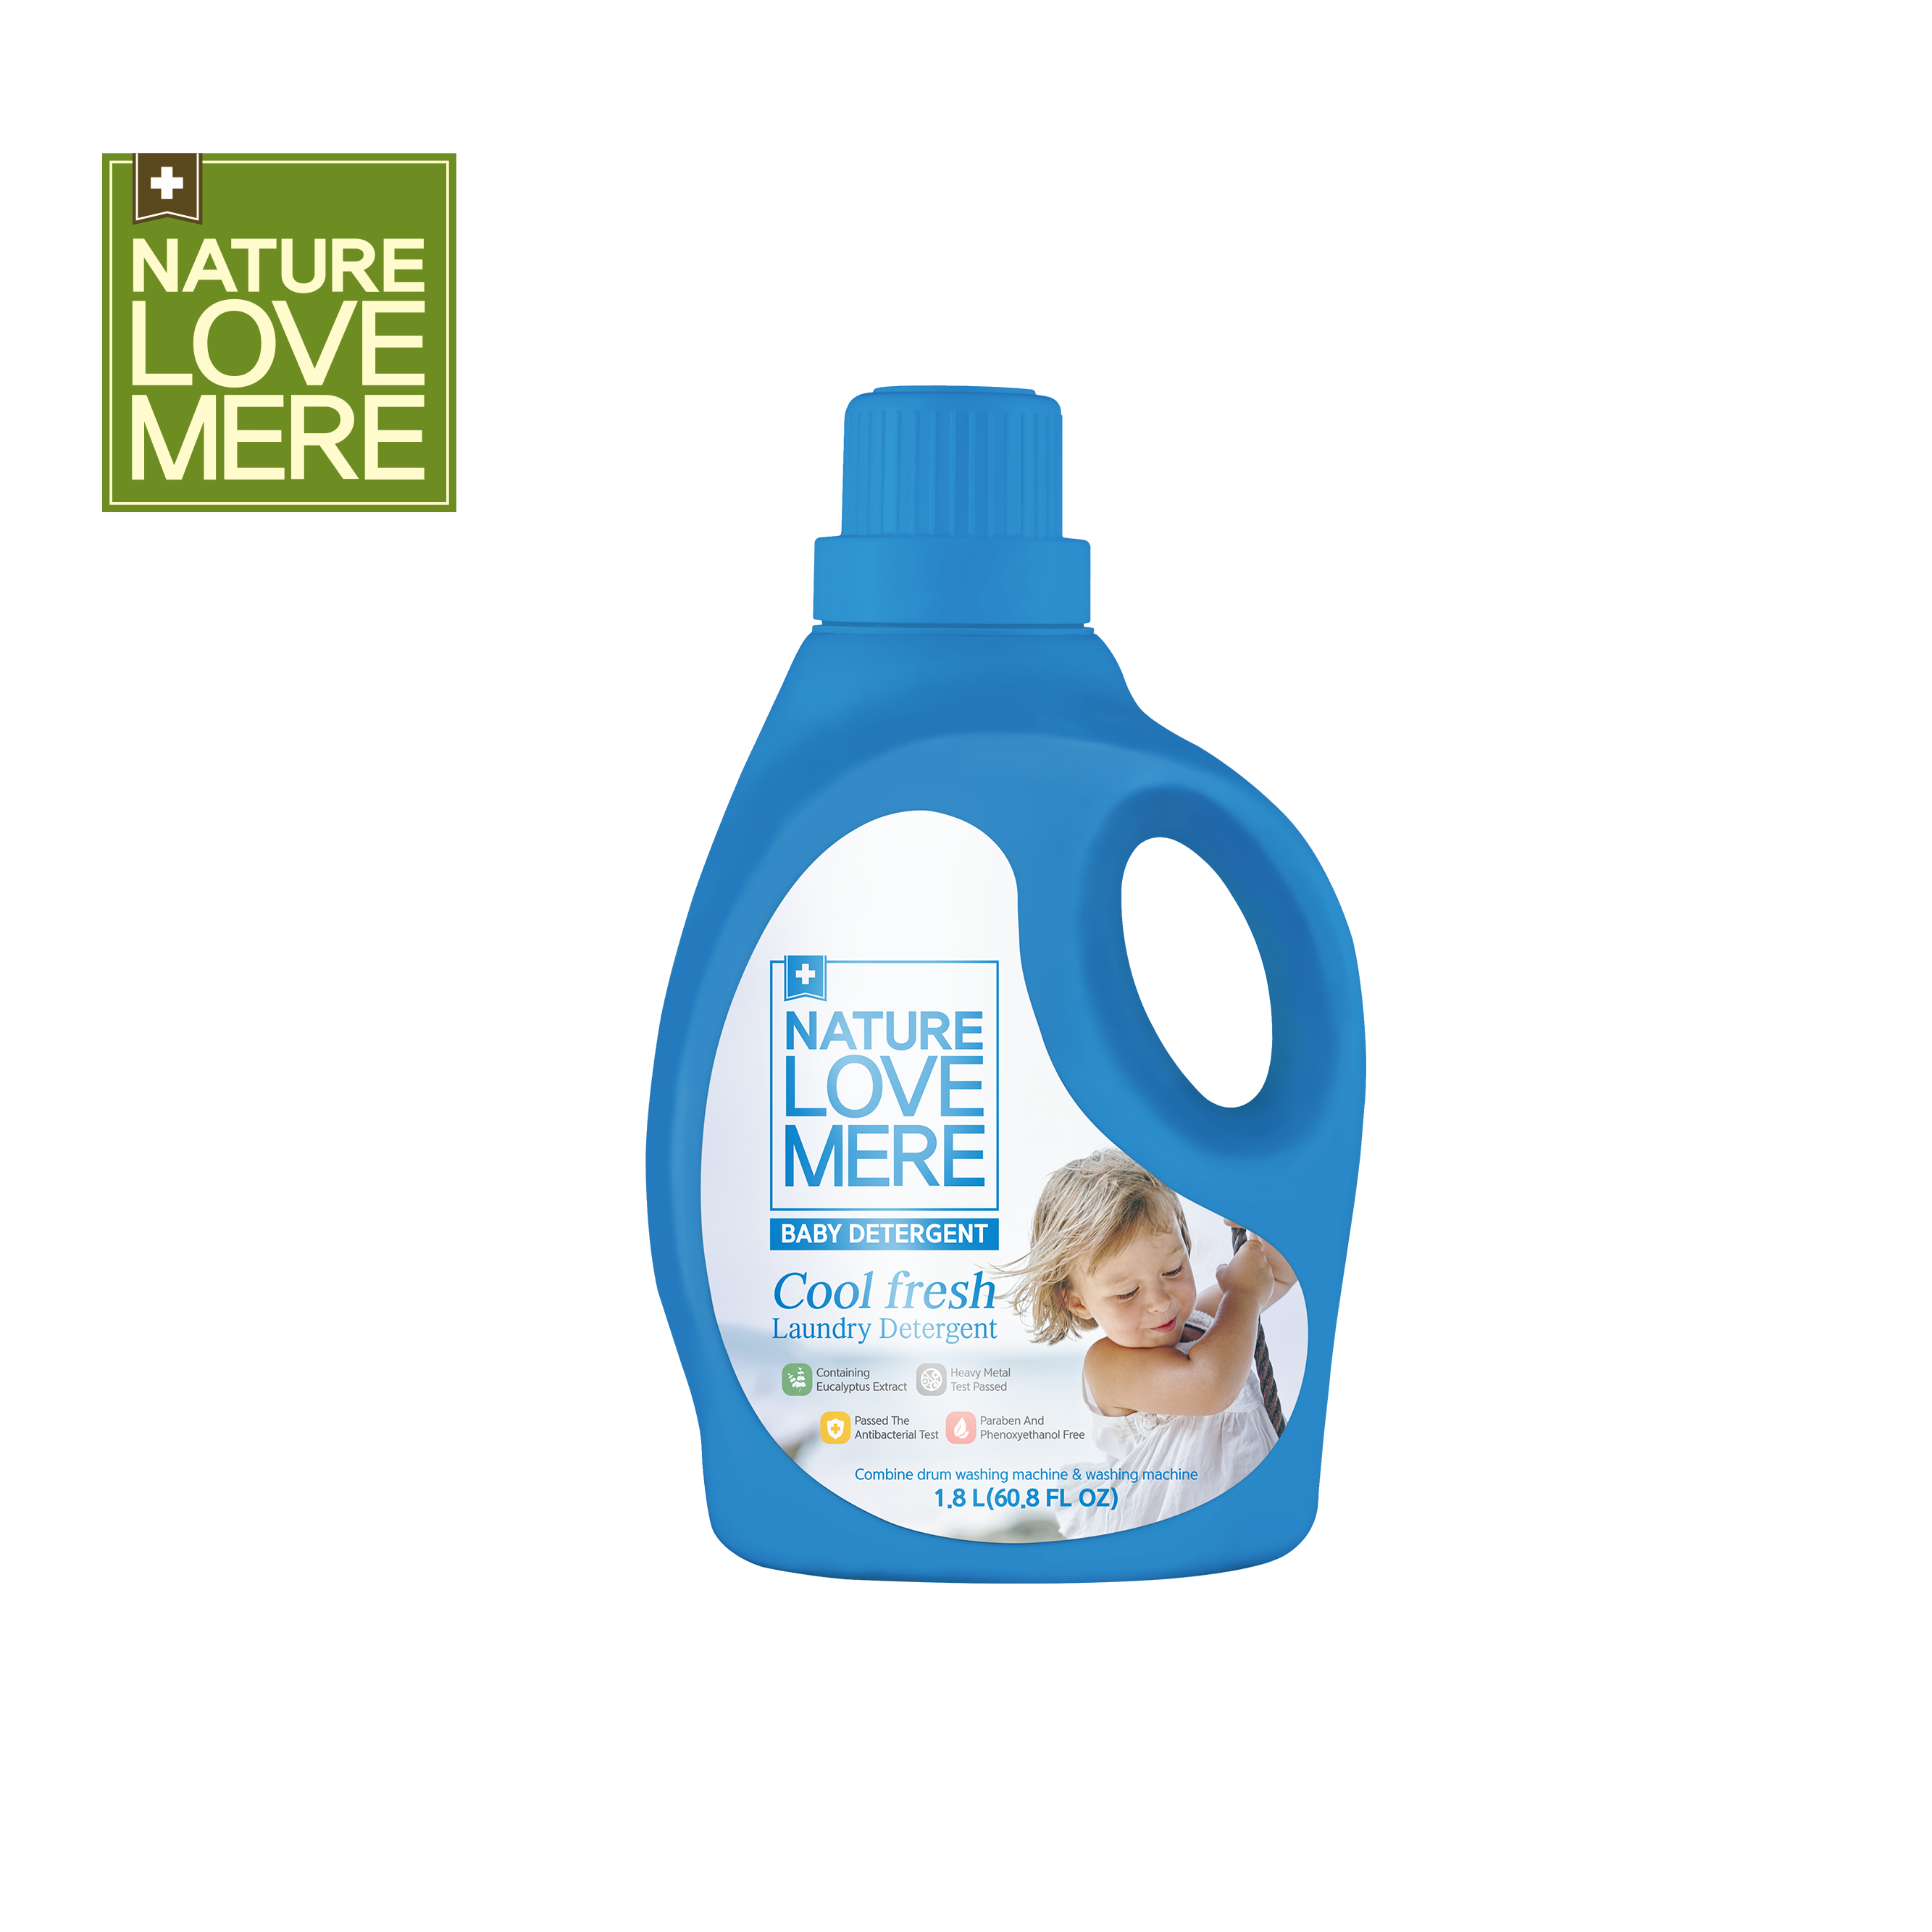 NATURE LOVE MERE Cool Fresh baby laundry detergent refill & container type (1,300ml & 1,800ml)